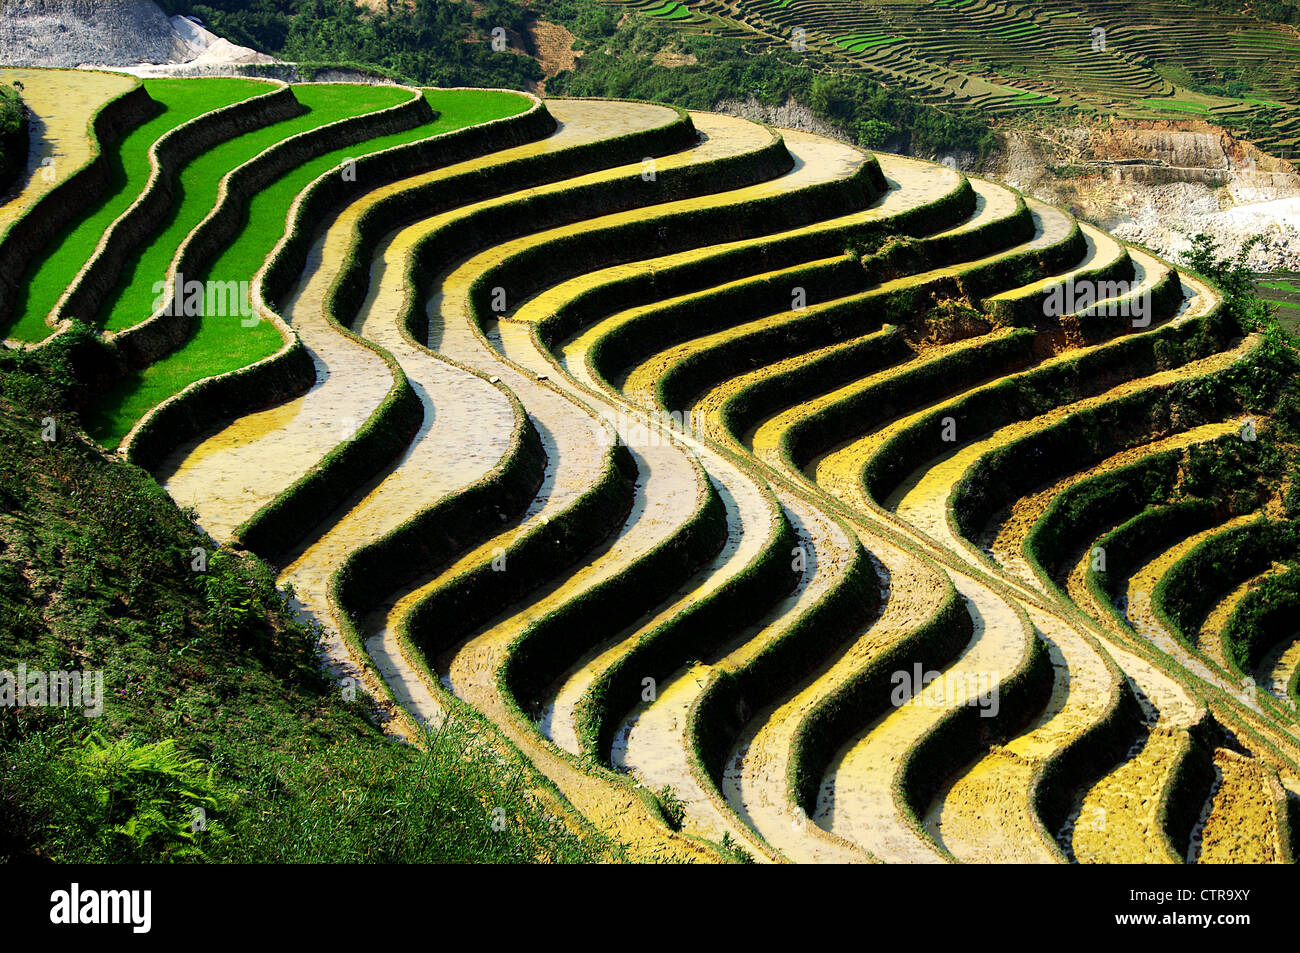 terraced fields and rice culture, Sapa, Vietnam - Stock Image